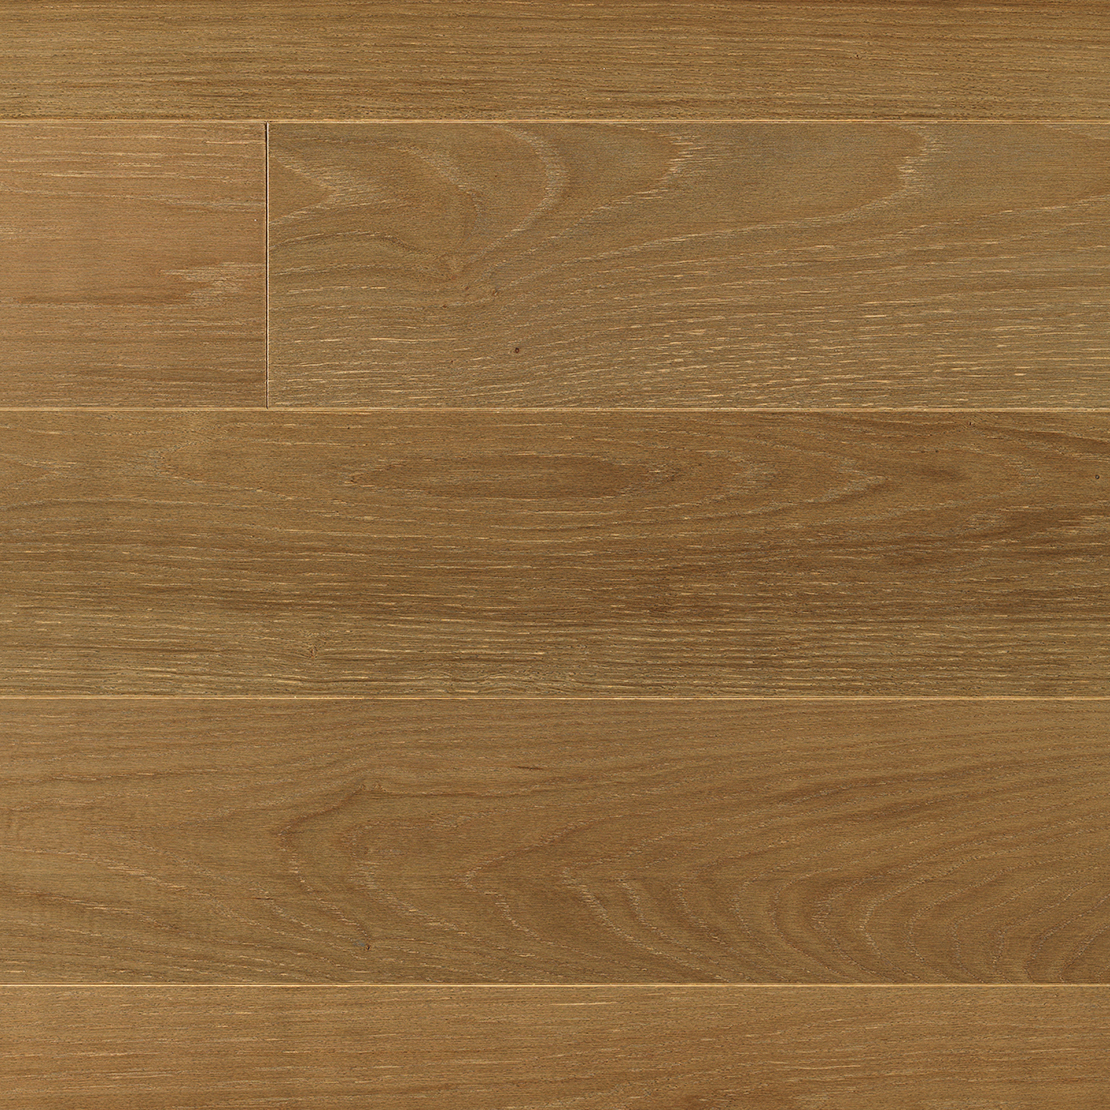 O_1432 Oak Engineered Parquet cut to size per project requirements